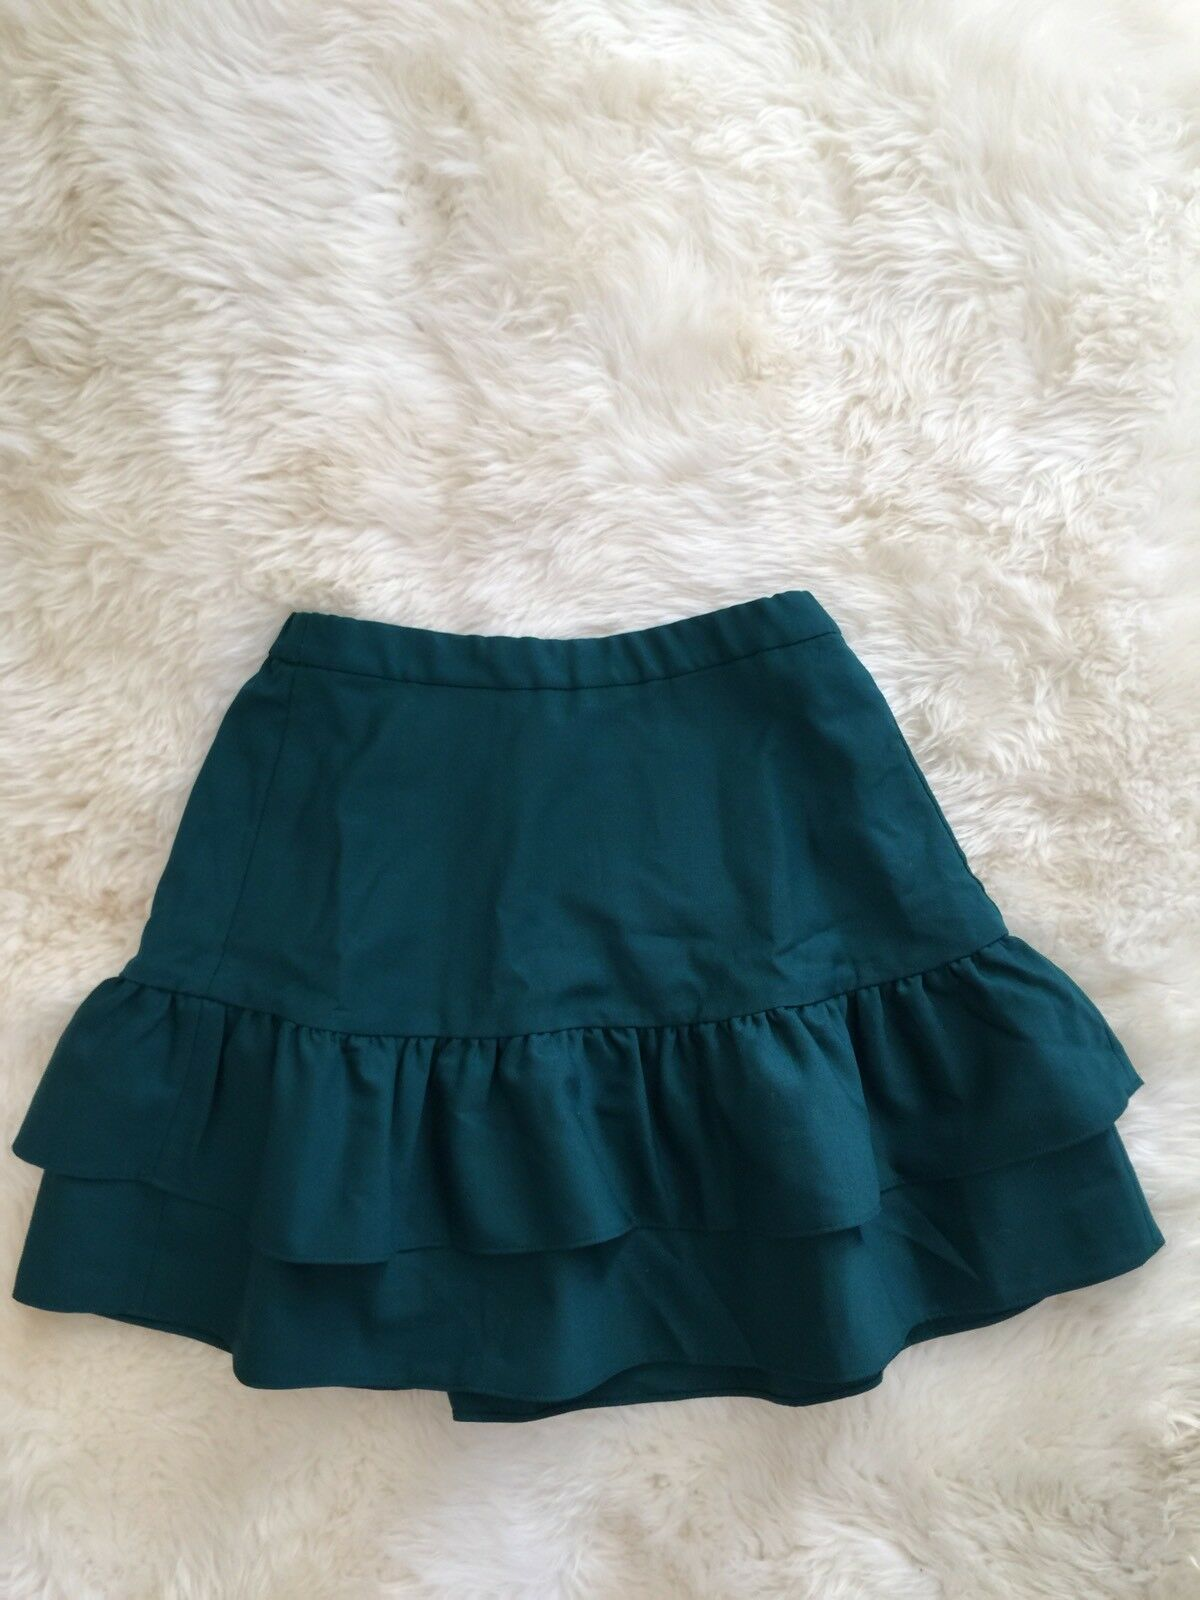 f065c8d9d8 New Jcrew Petite wool flannel ruffle Office skirt Deep Deep Deep Jade G8870  Size 2P 98f639